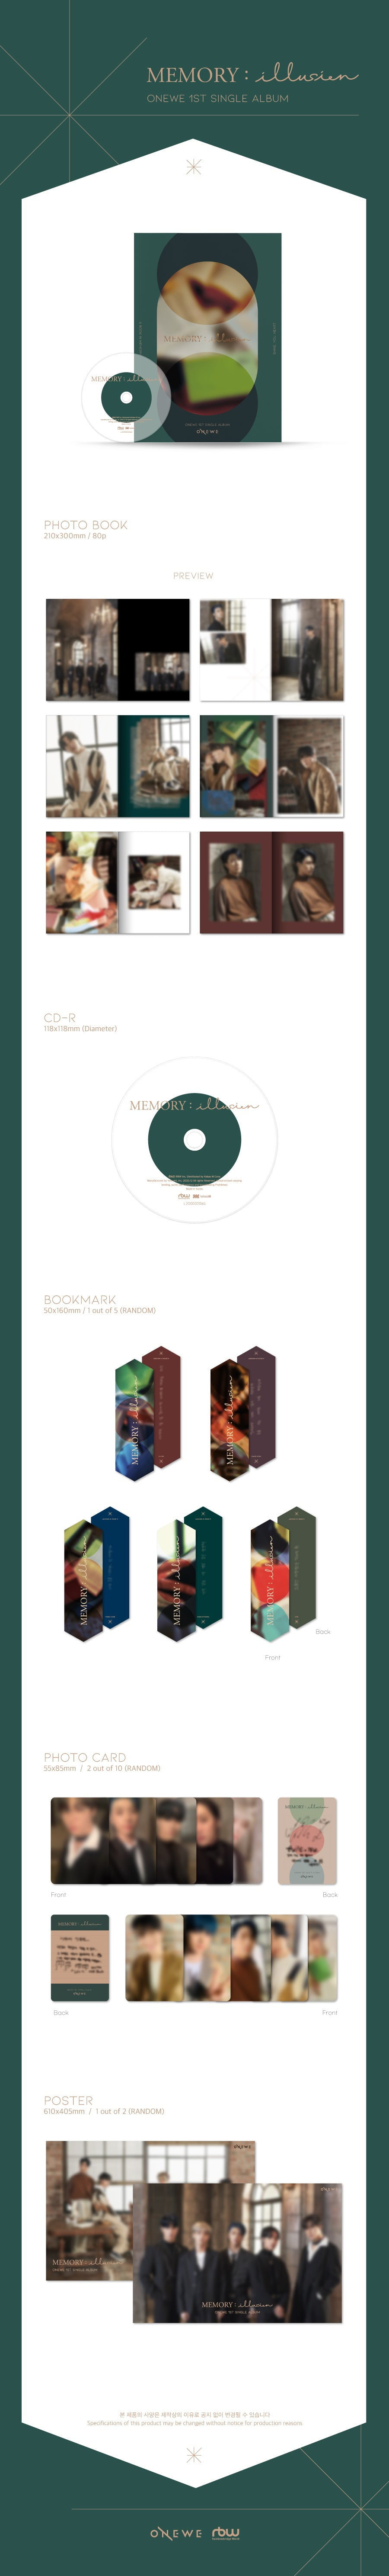 ONEWE - MEMORY : illusion product details